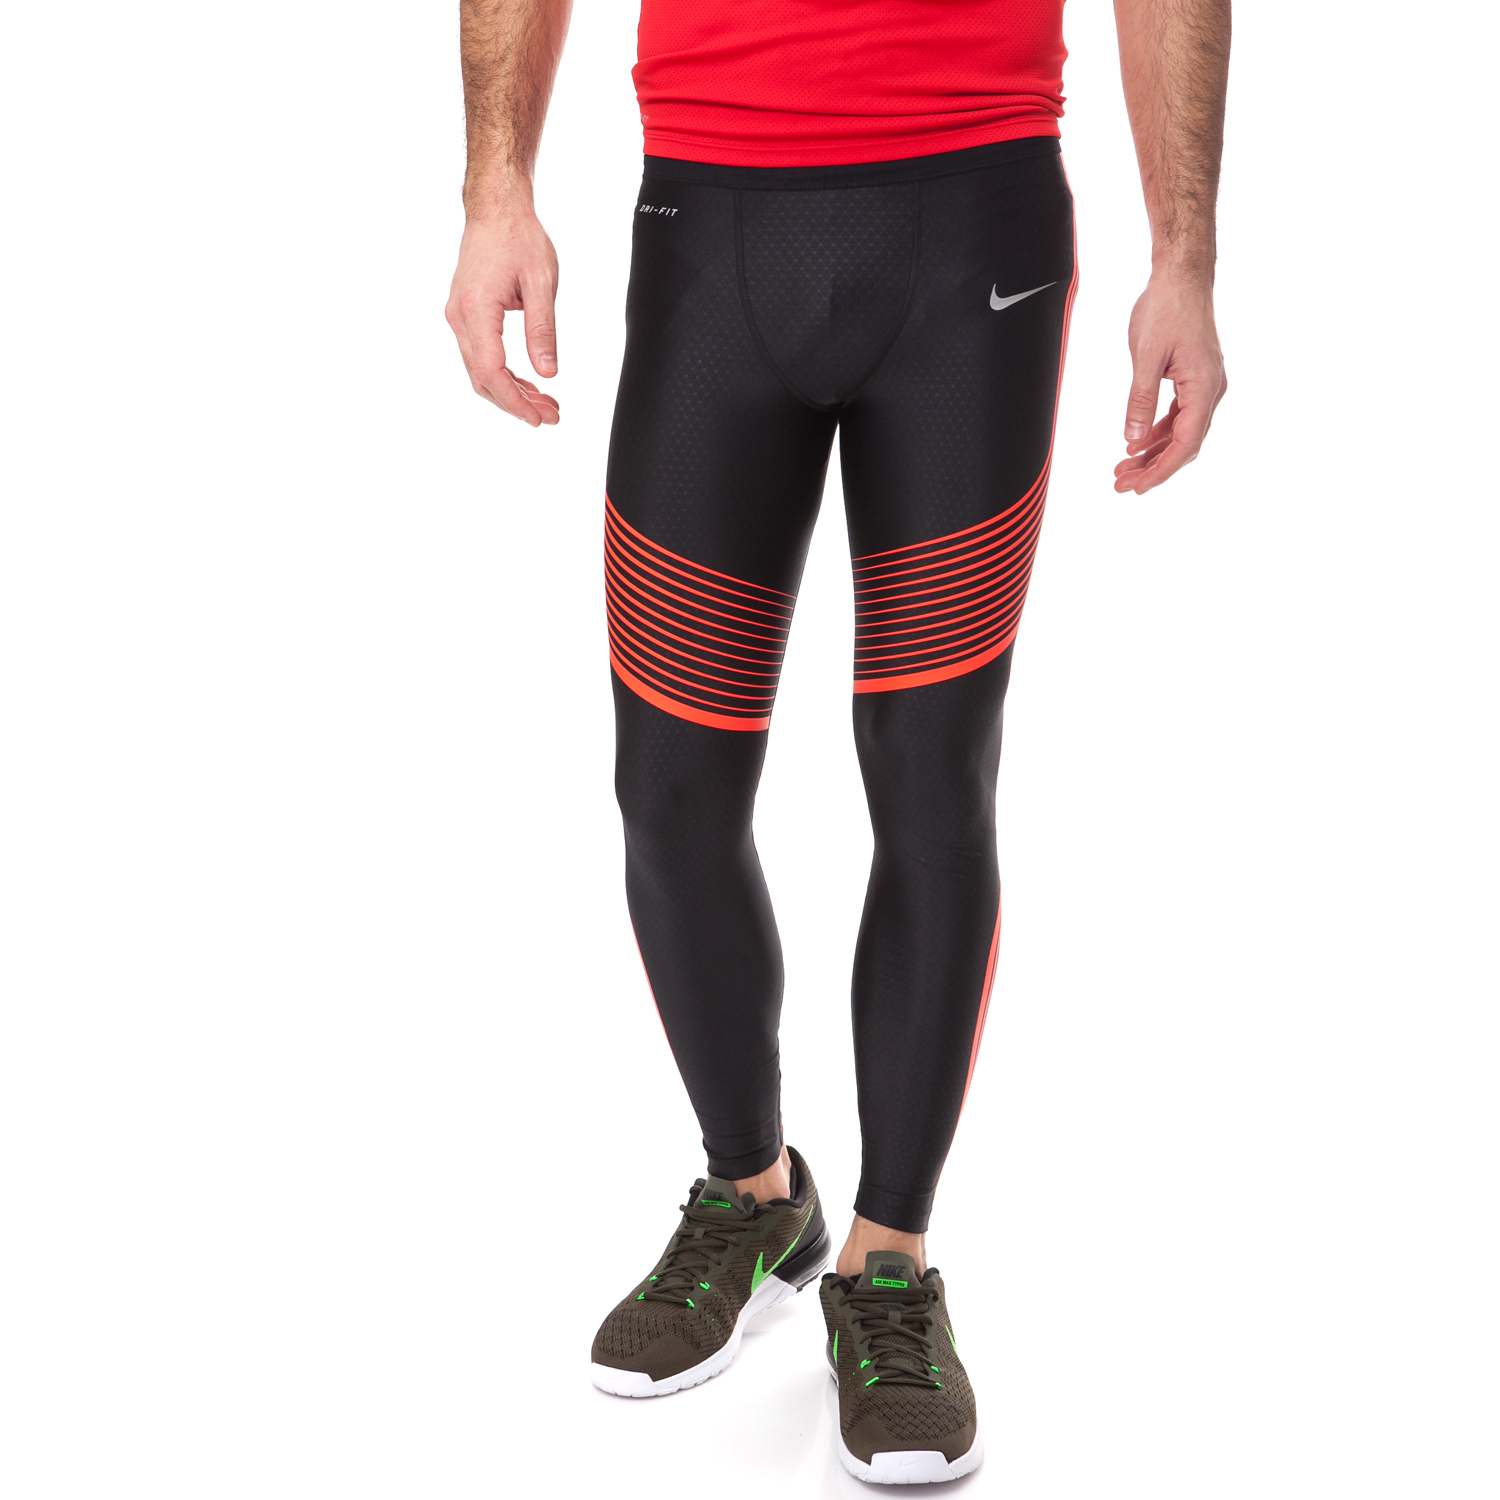 NIKE - Ανδρικό κολάν NIKE POWER SPEED TIGHT μαύρο ανδρικά ρούχα αθλητικά κολάν